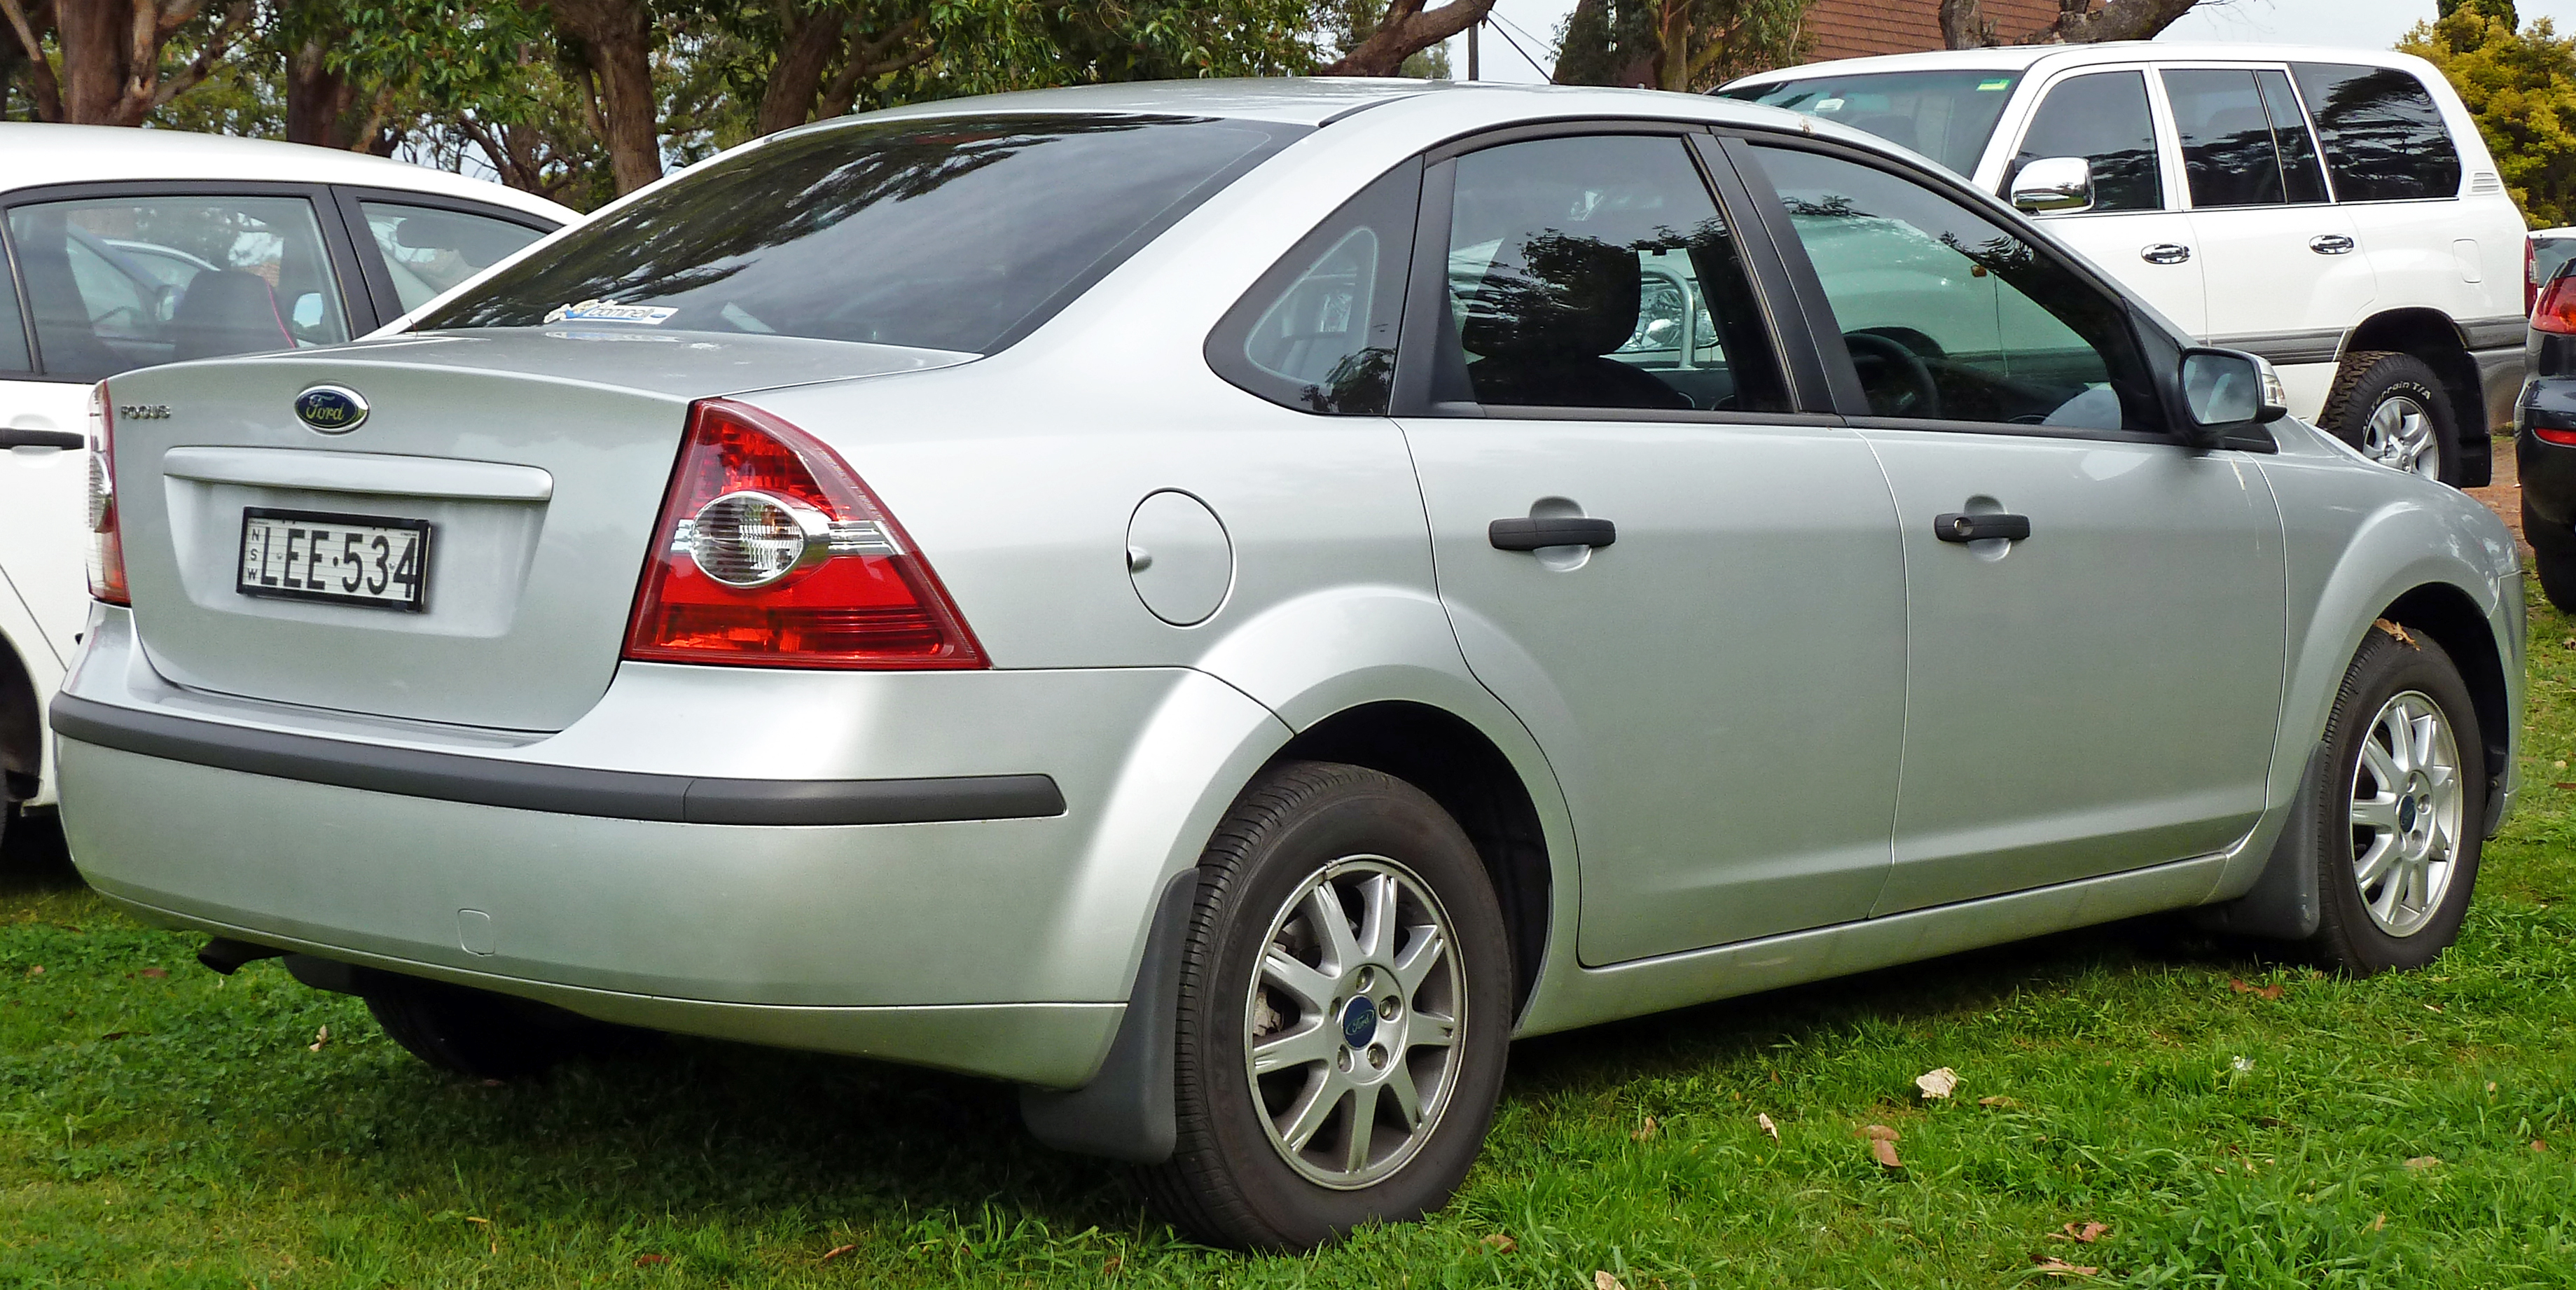 ford focus - 4385px image #7